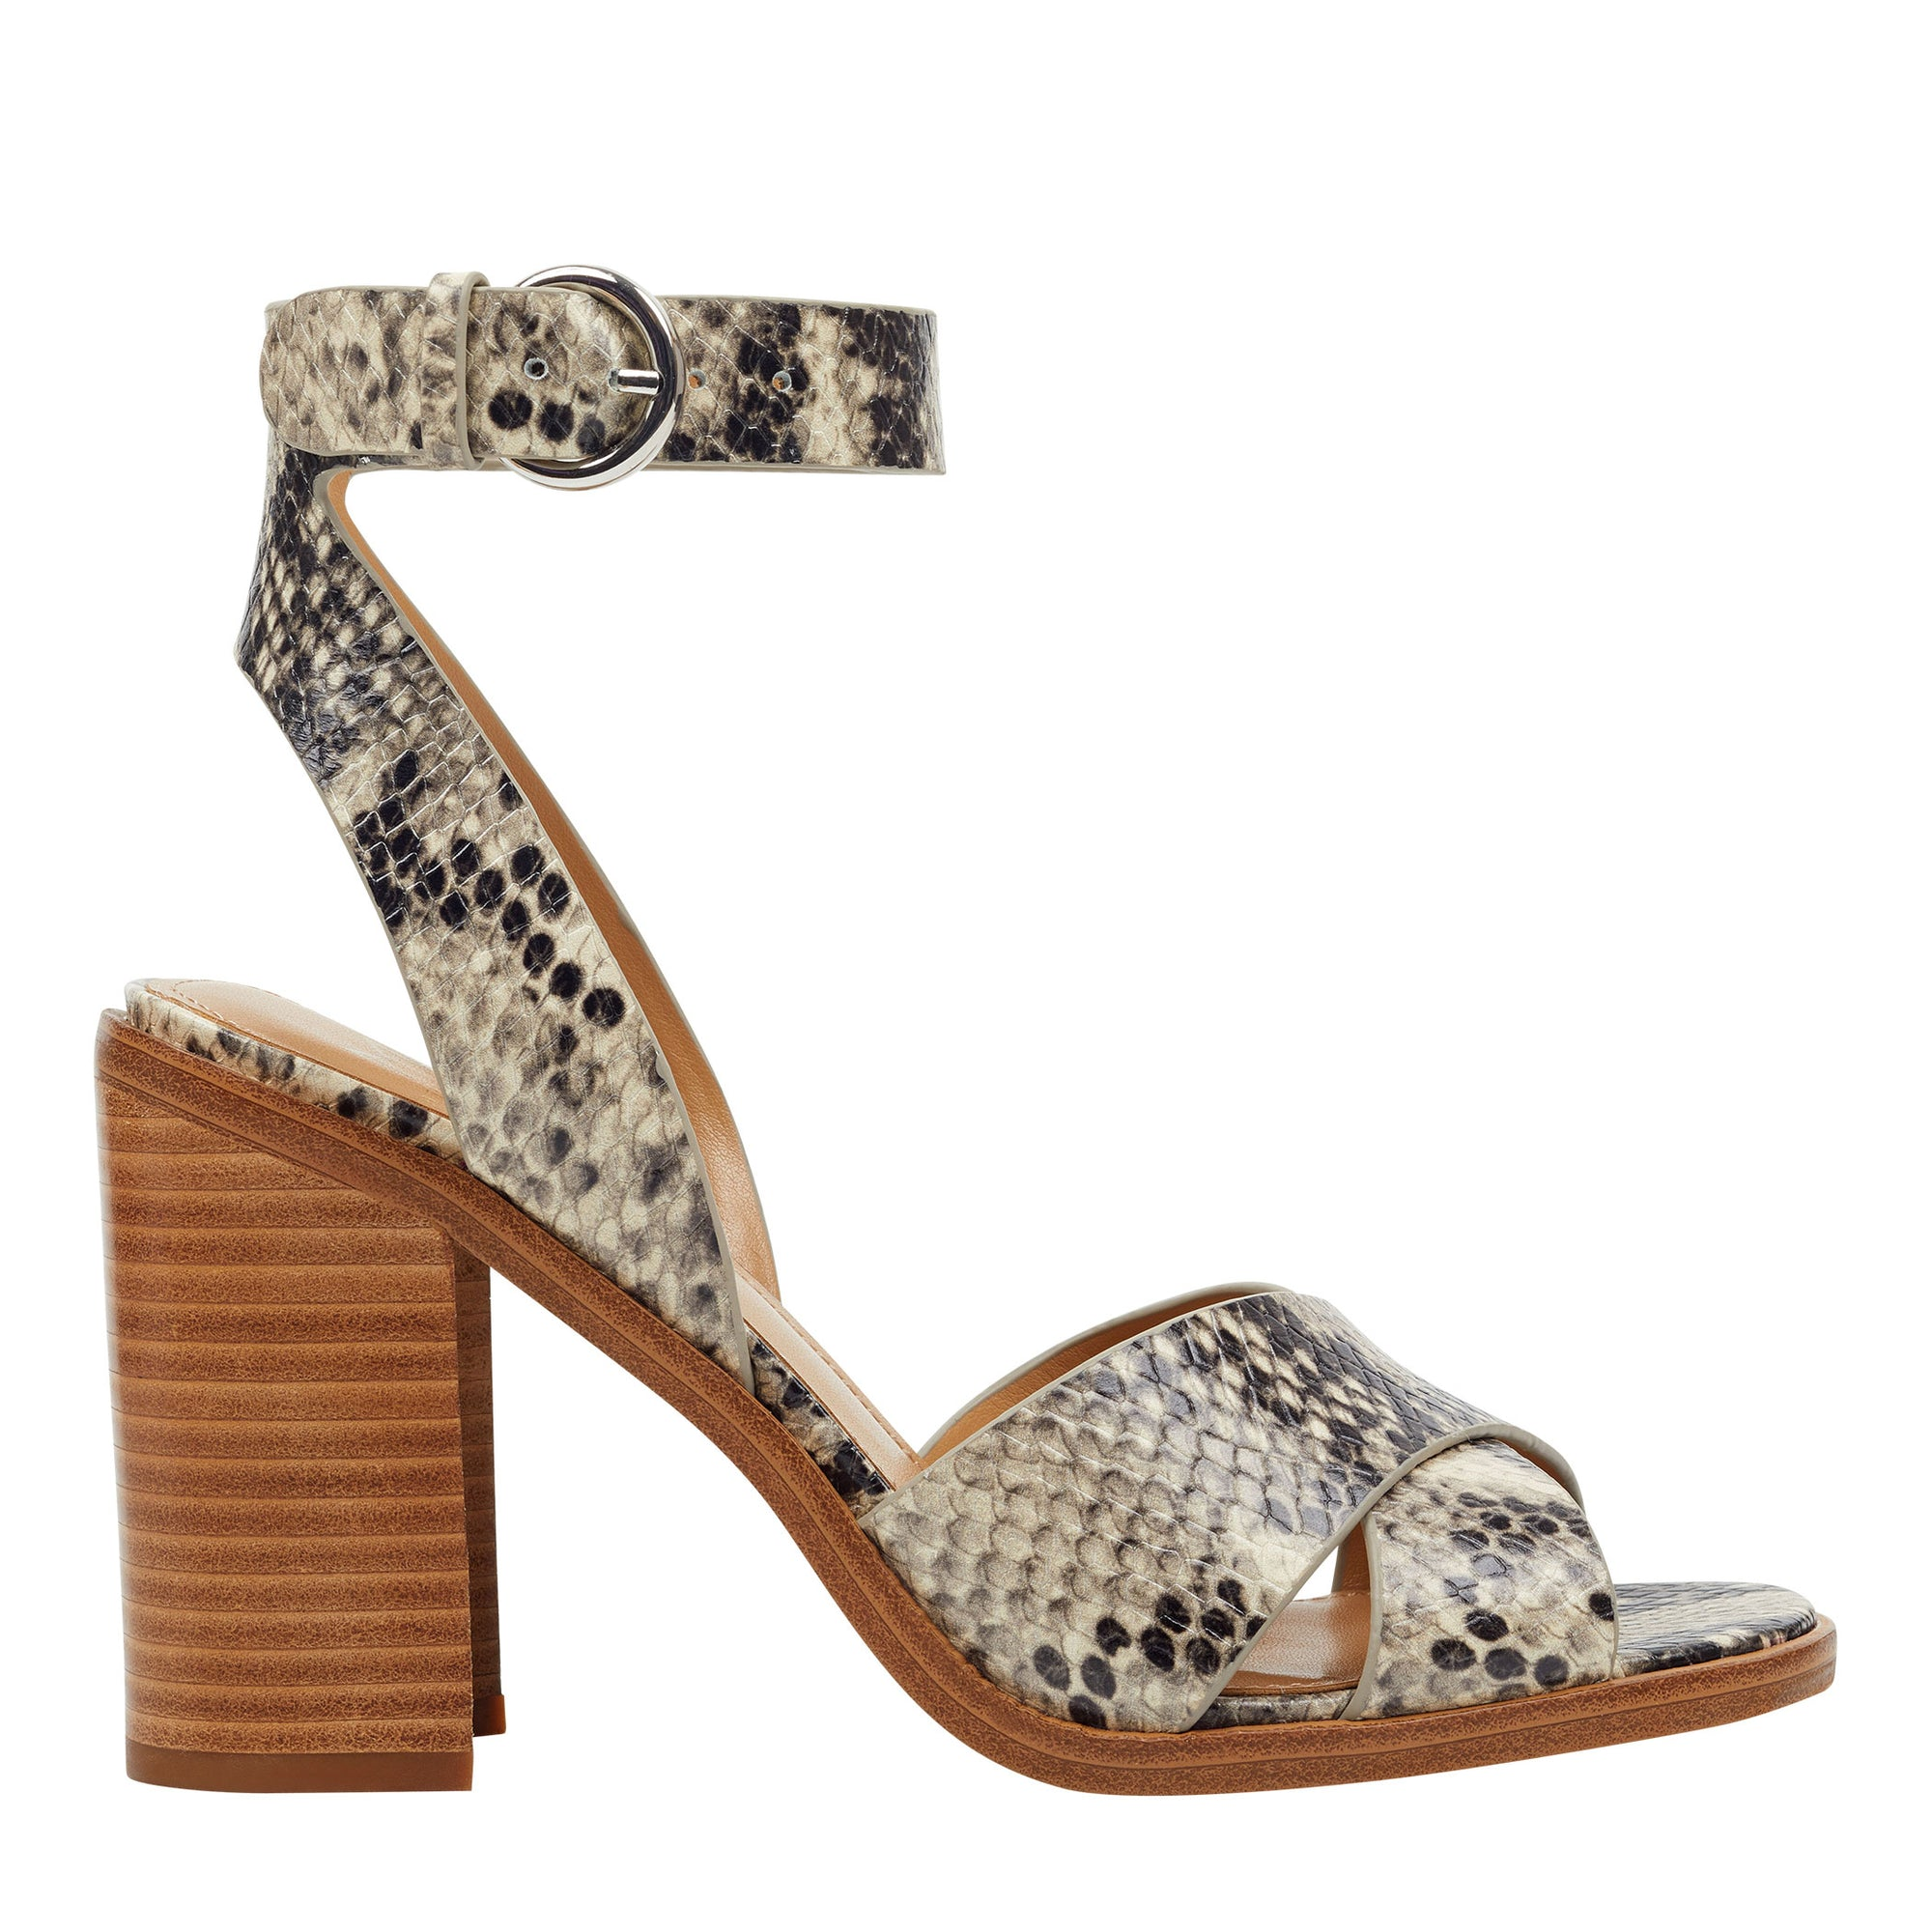 orla-city-sandal-in-snake-printed-leather